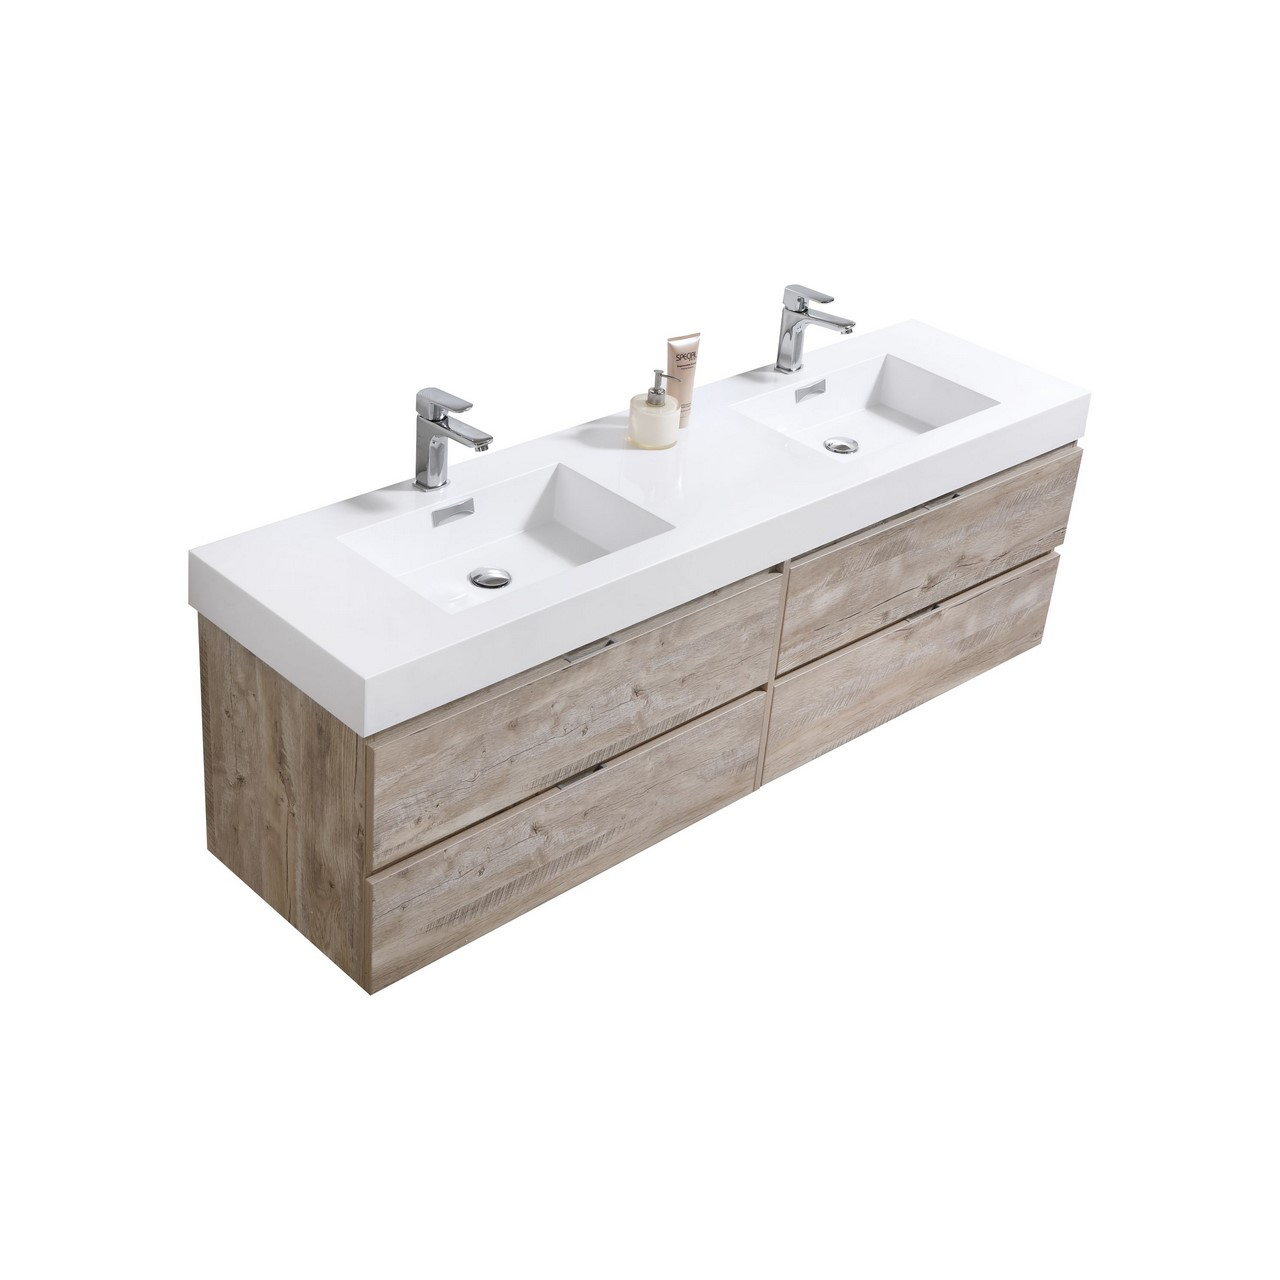 "Modern Lux 80"" Double Sink Nature Wood Wall Mount Modern Bathroom Vanity"